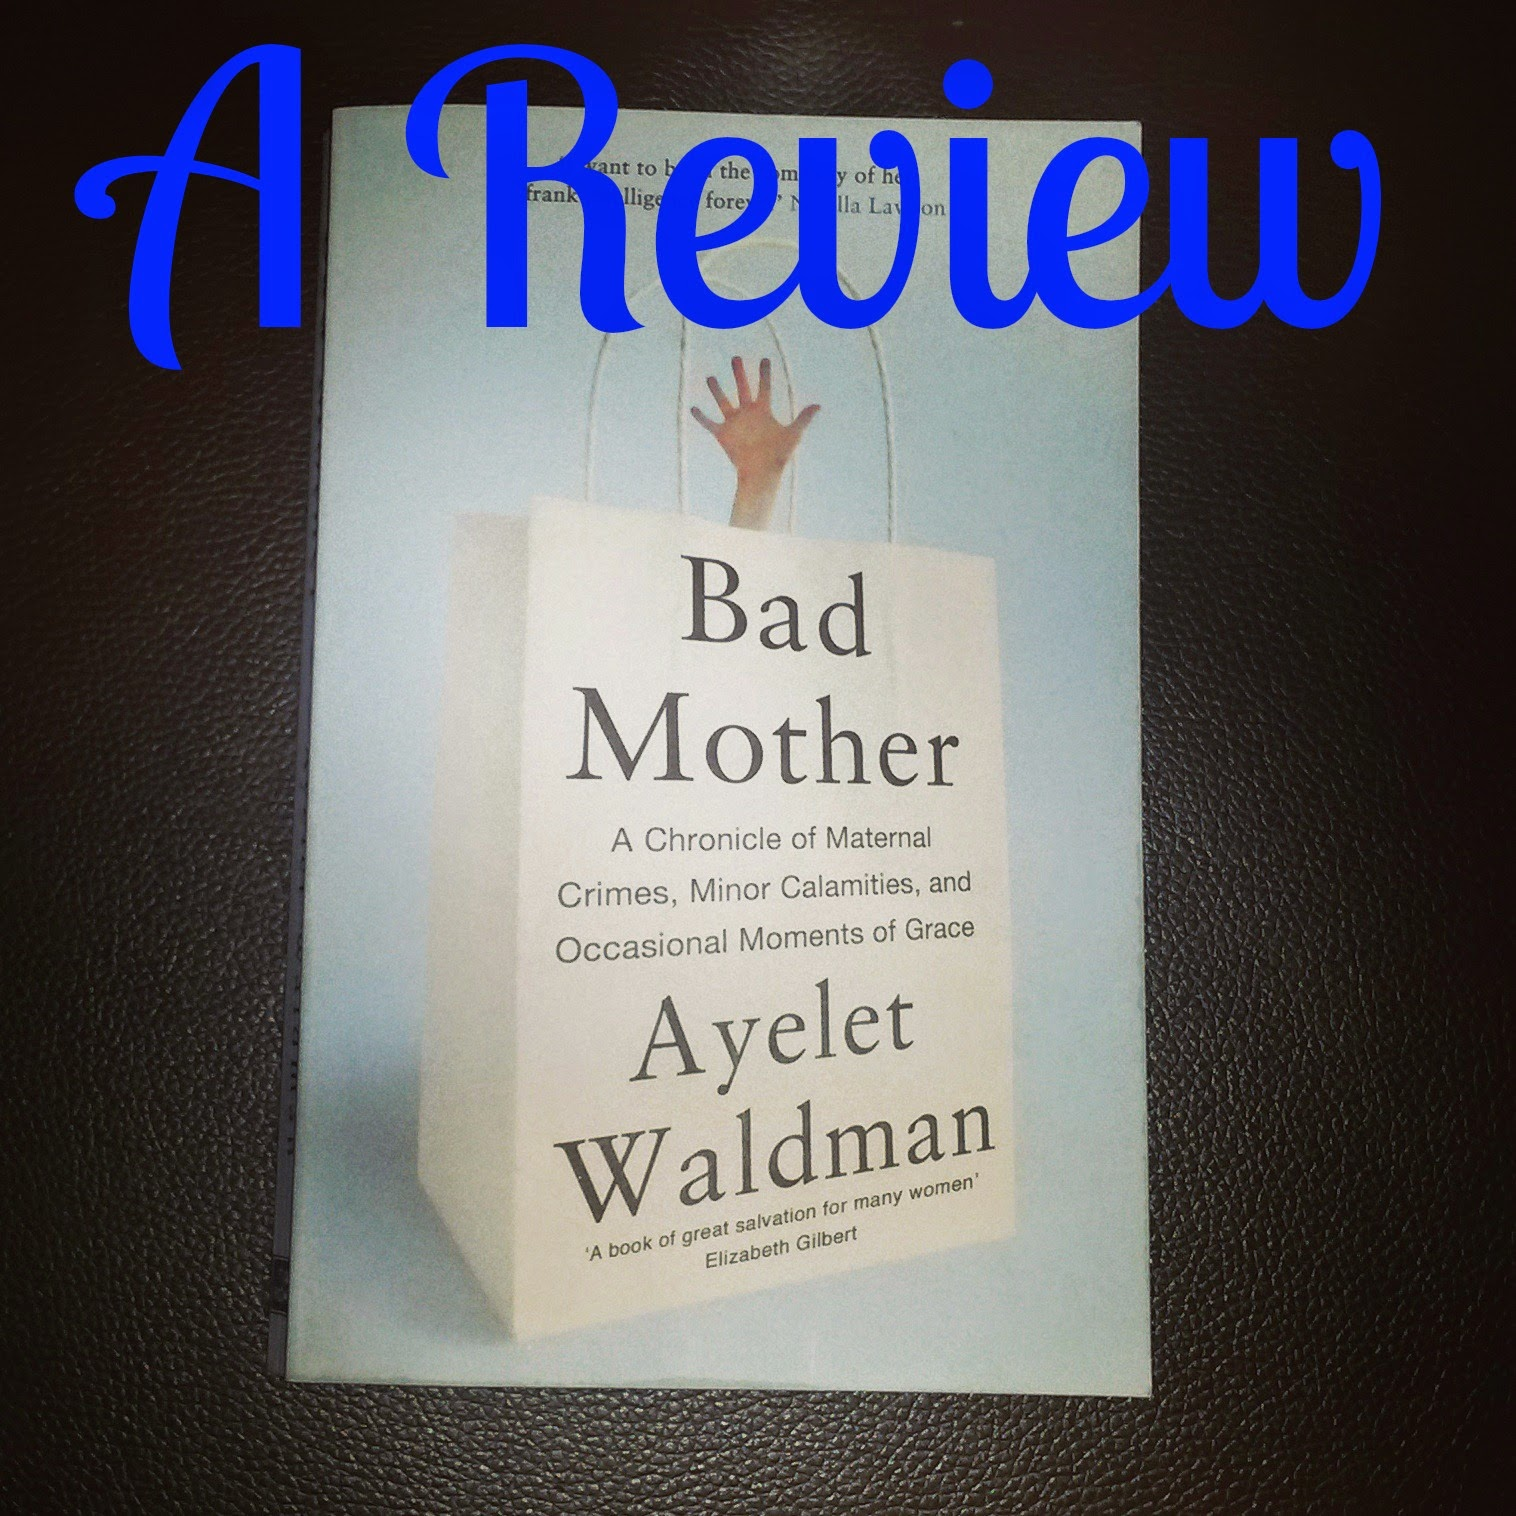 Bad Mother Ayelet Waldman Review